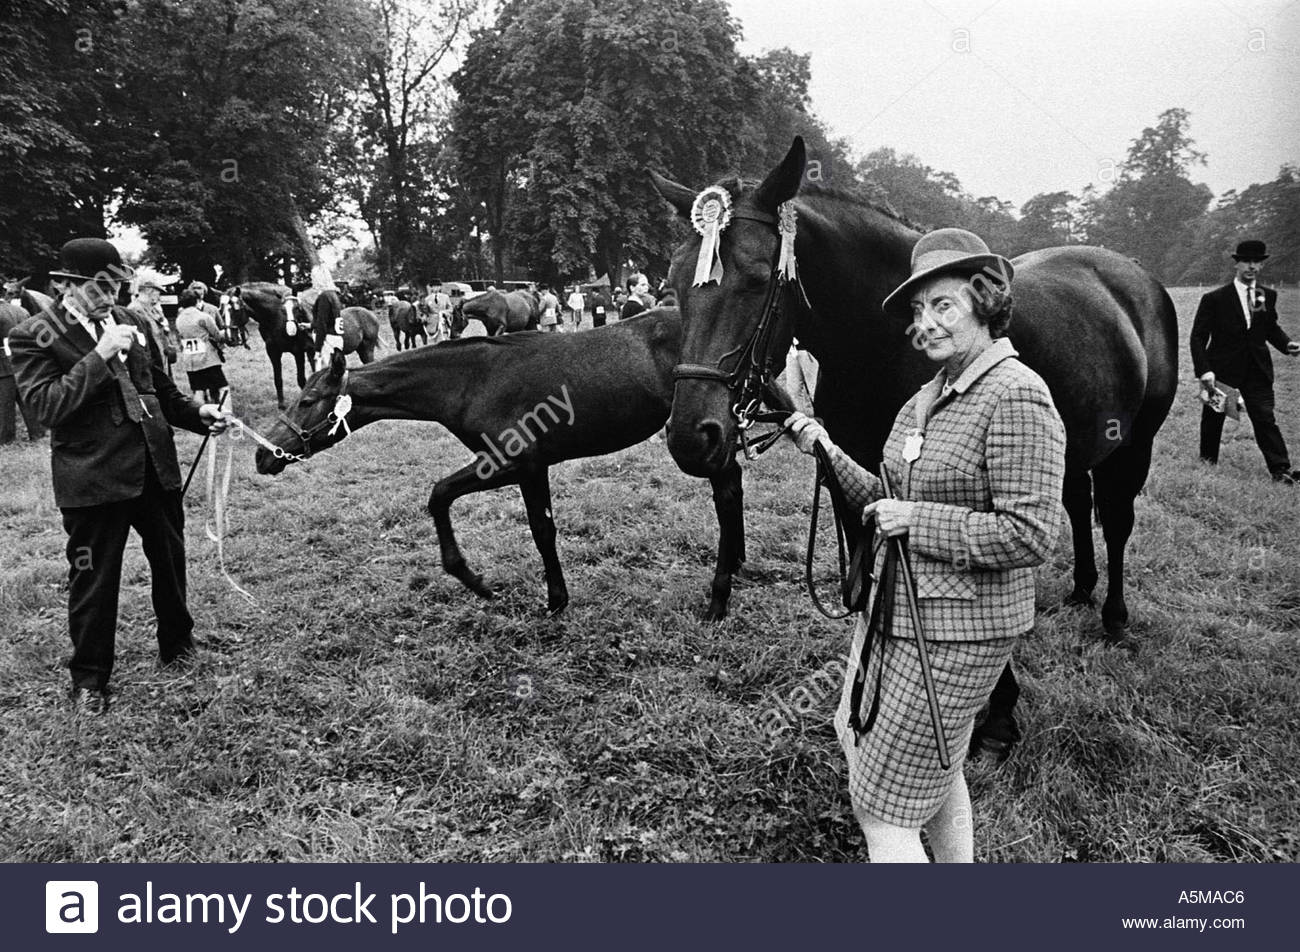 Stern gaze from a competitor in the horse judging at at the Aylsbury County Show, UK - Stock Image